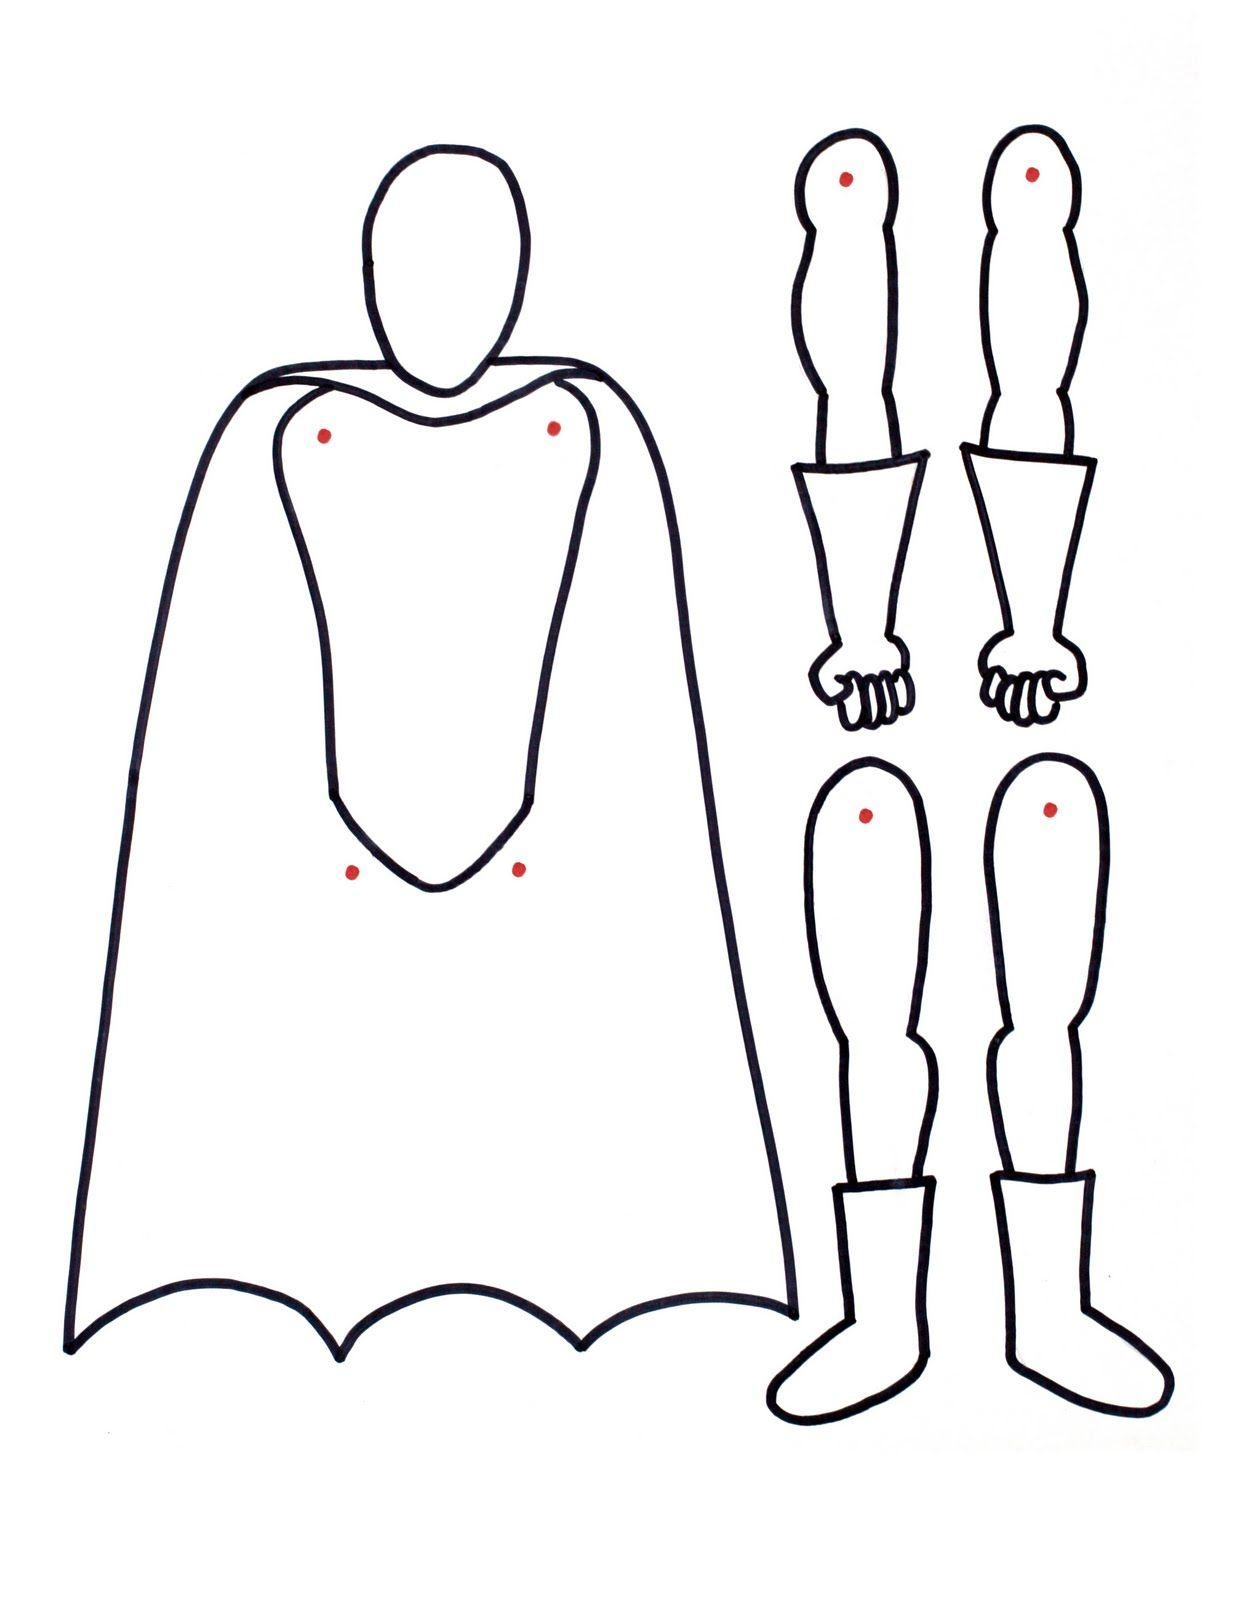 Superhero Printable With Movable Arms And Legs Paper Doll